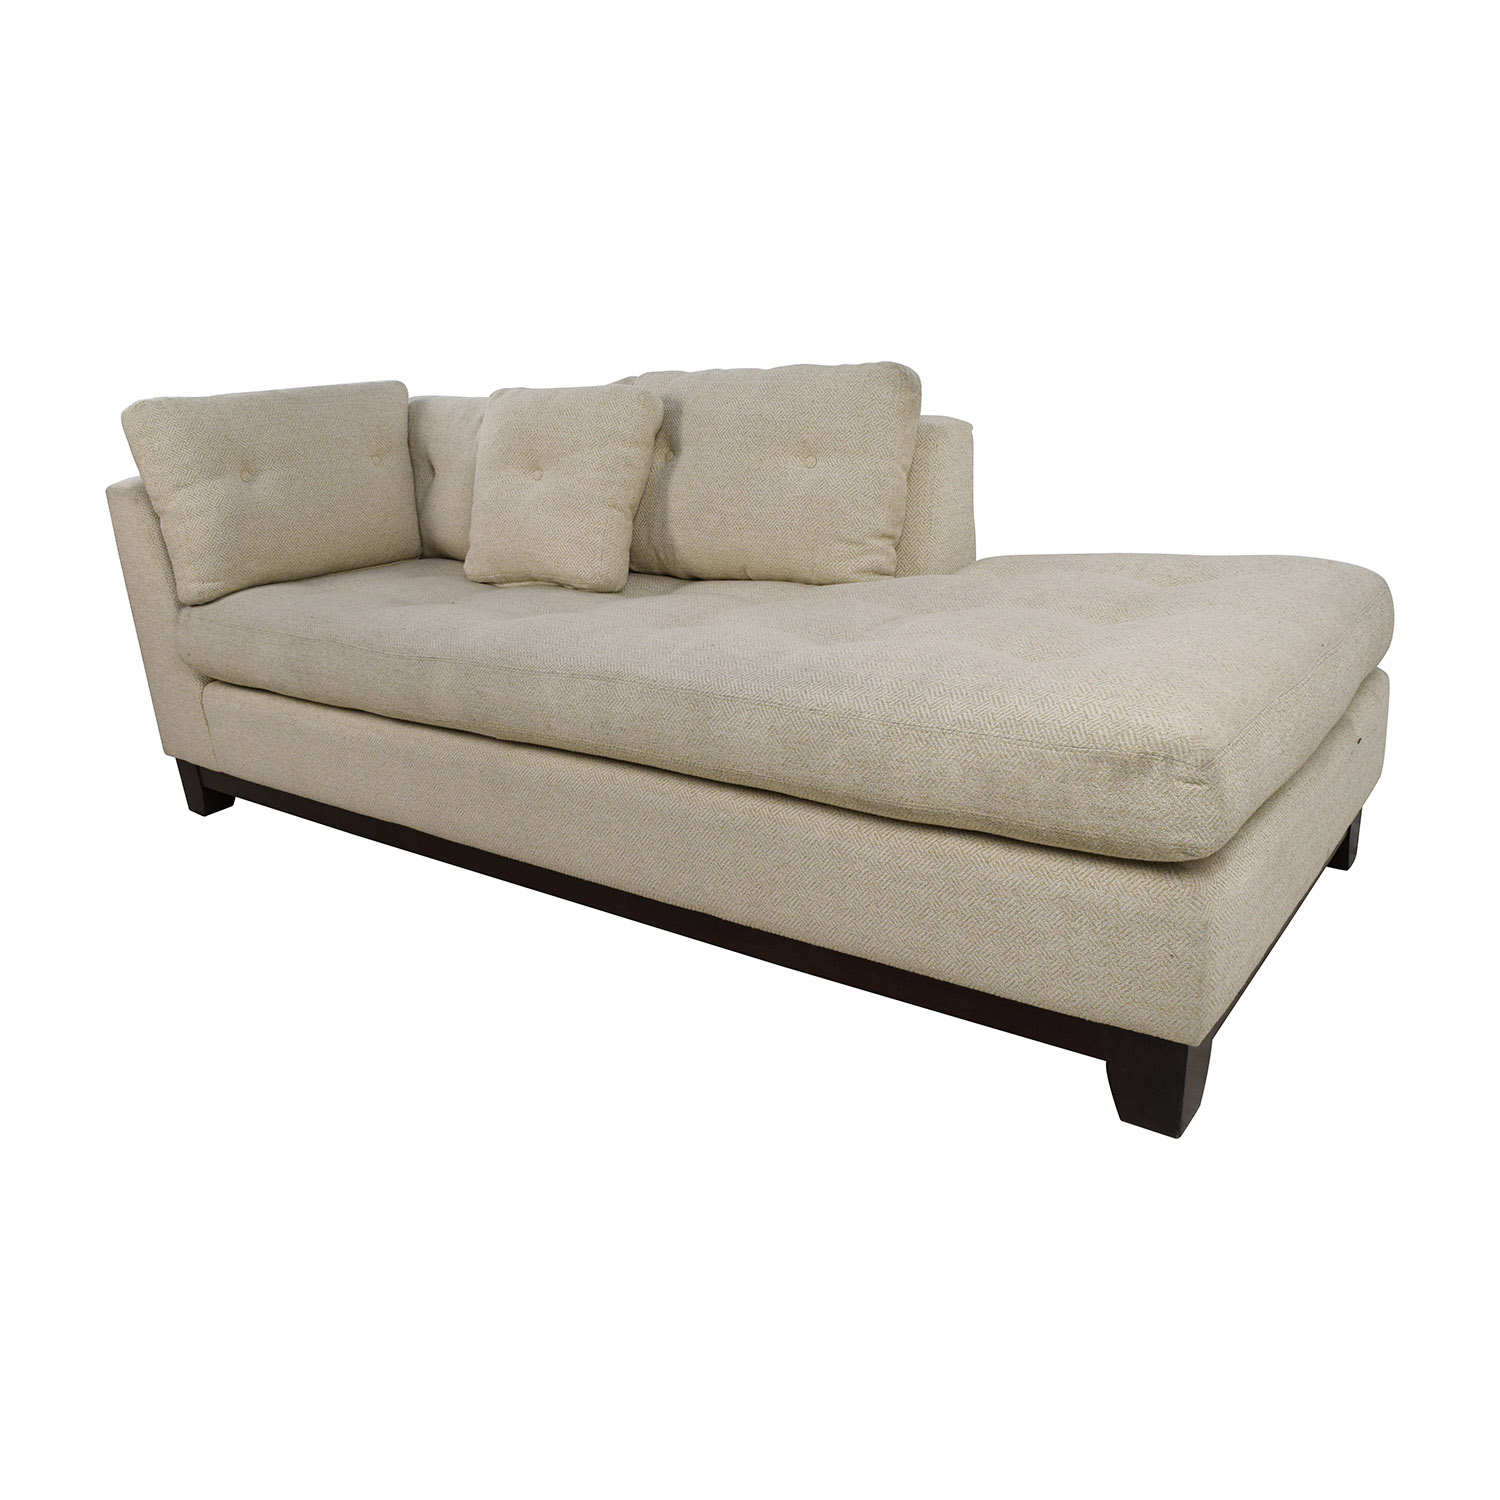 Chaises discount livingston leatherlook loveseat with for Chaise promotion